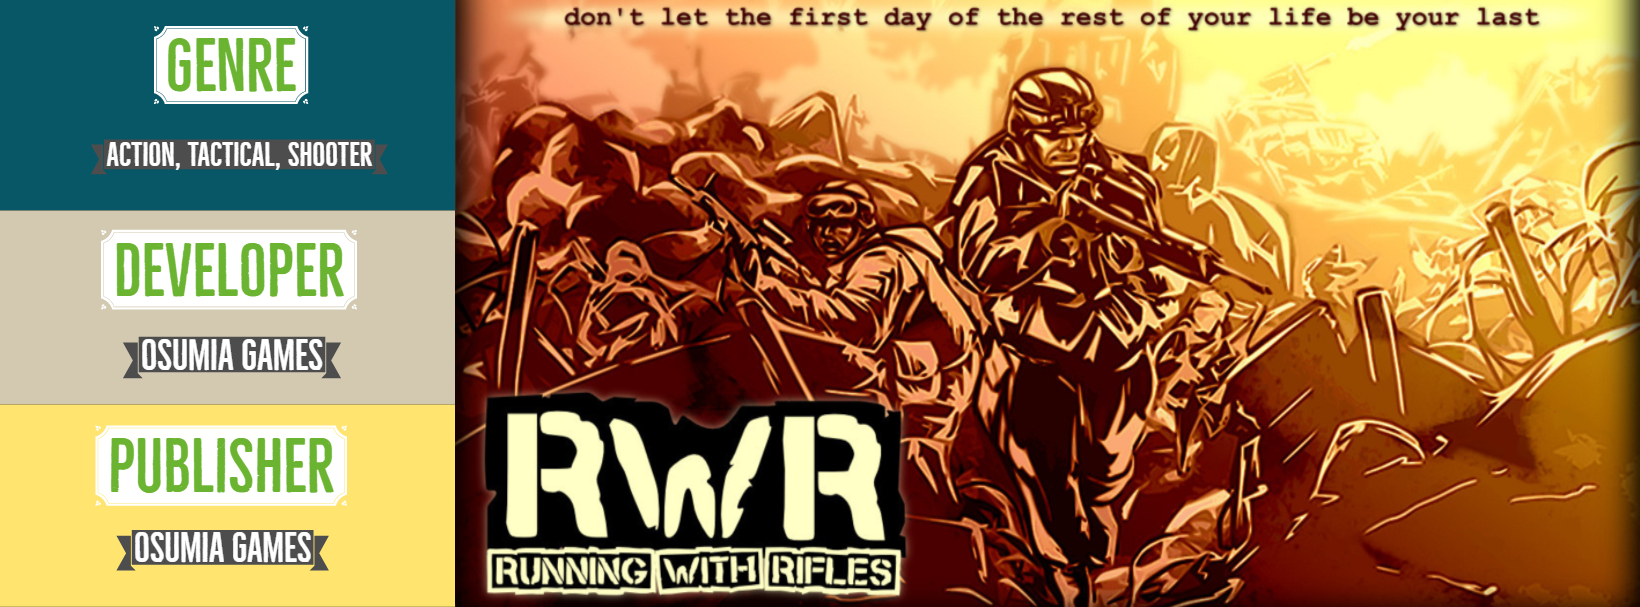 running-with-rifles-banner-image